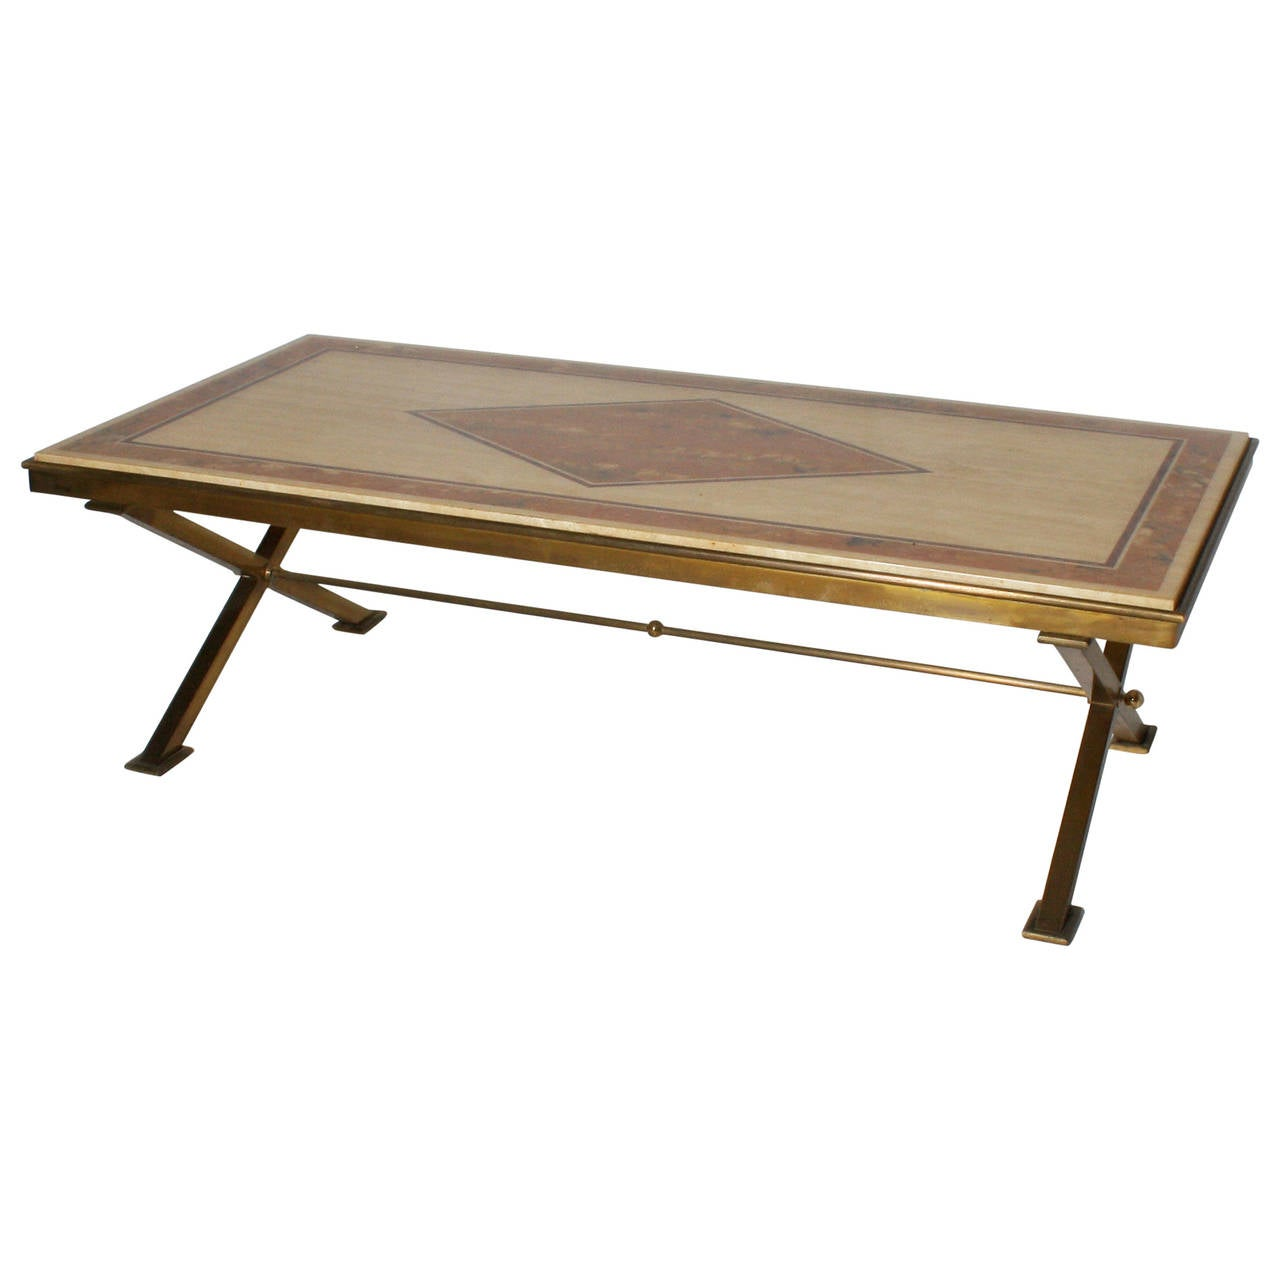 1950s bronze x base coffee table with travertine top and faux marble by jansen at 1stdibs Bases for coffee tables